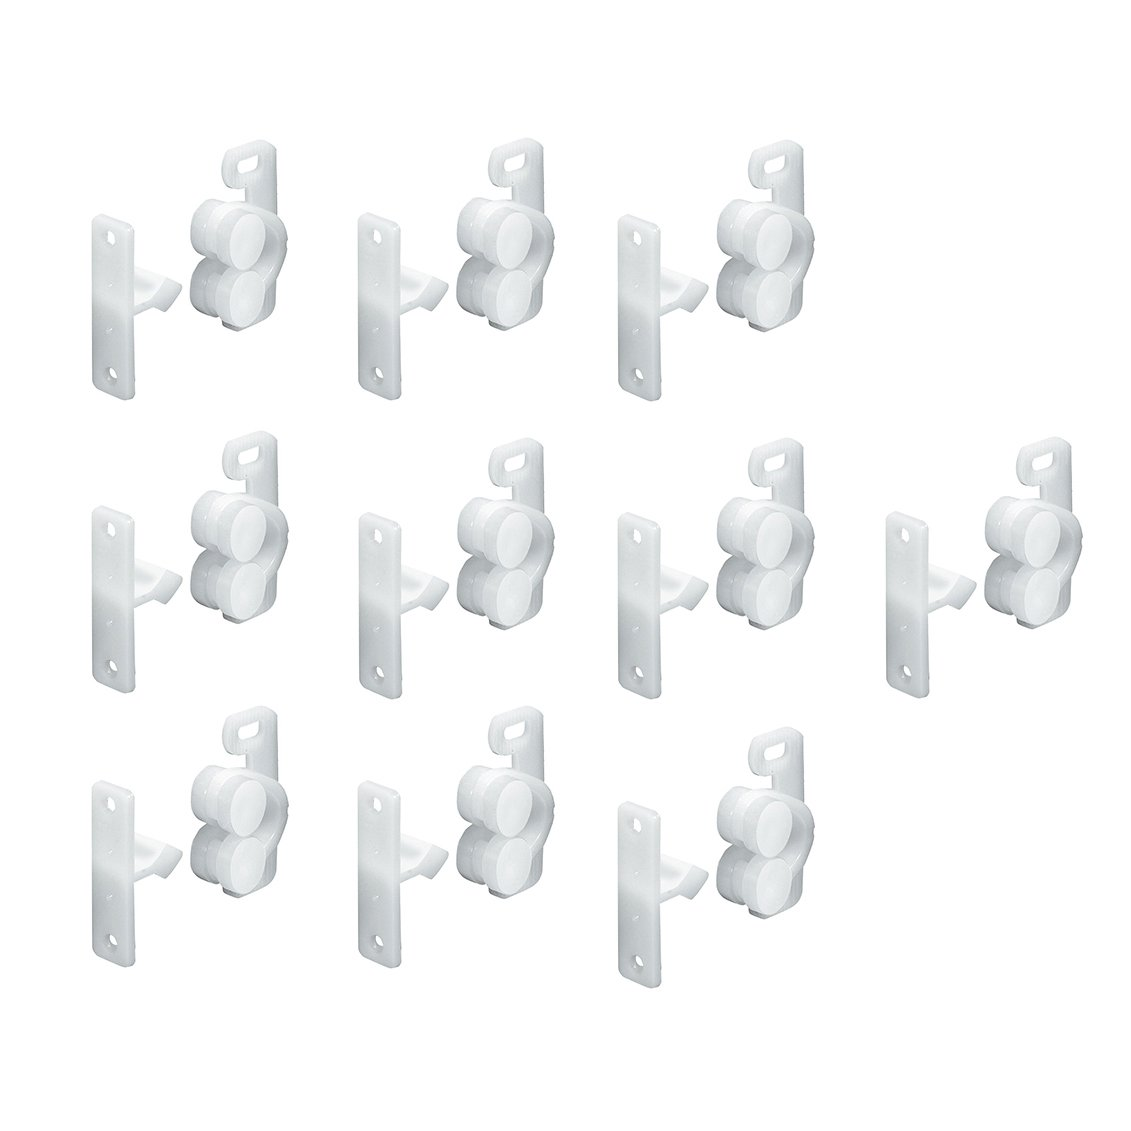 HAFELE Plastic Double Roller Cupboard Cabinet Door Catch with Plates and Screws for Home Furniture Silent Locks (10 Pcs) Häfele